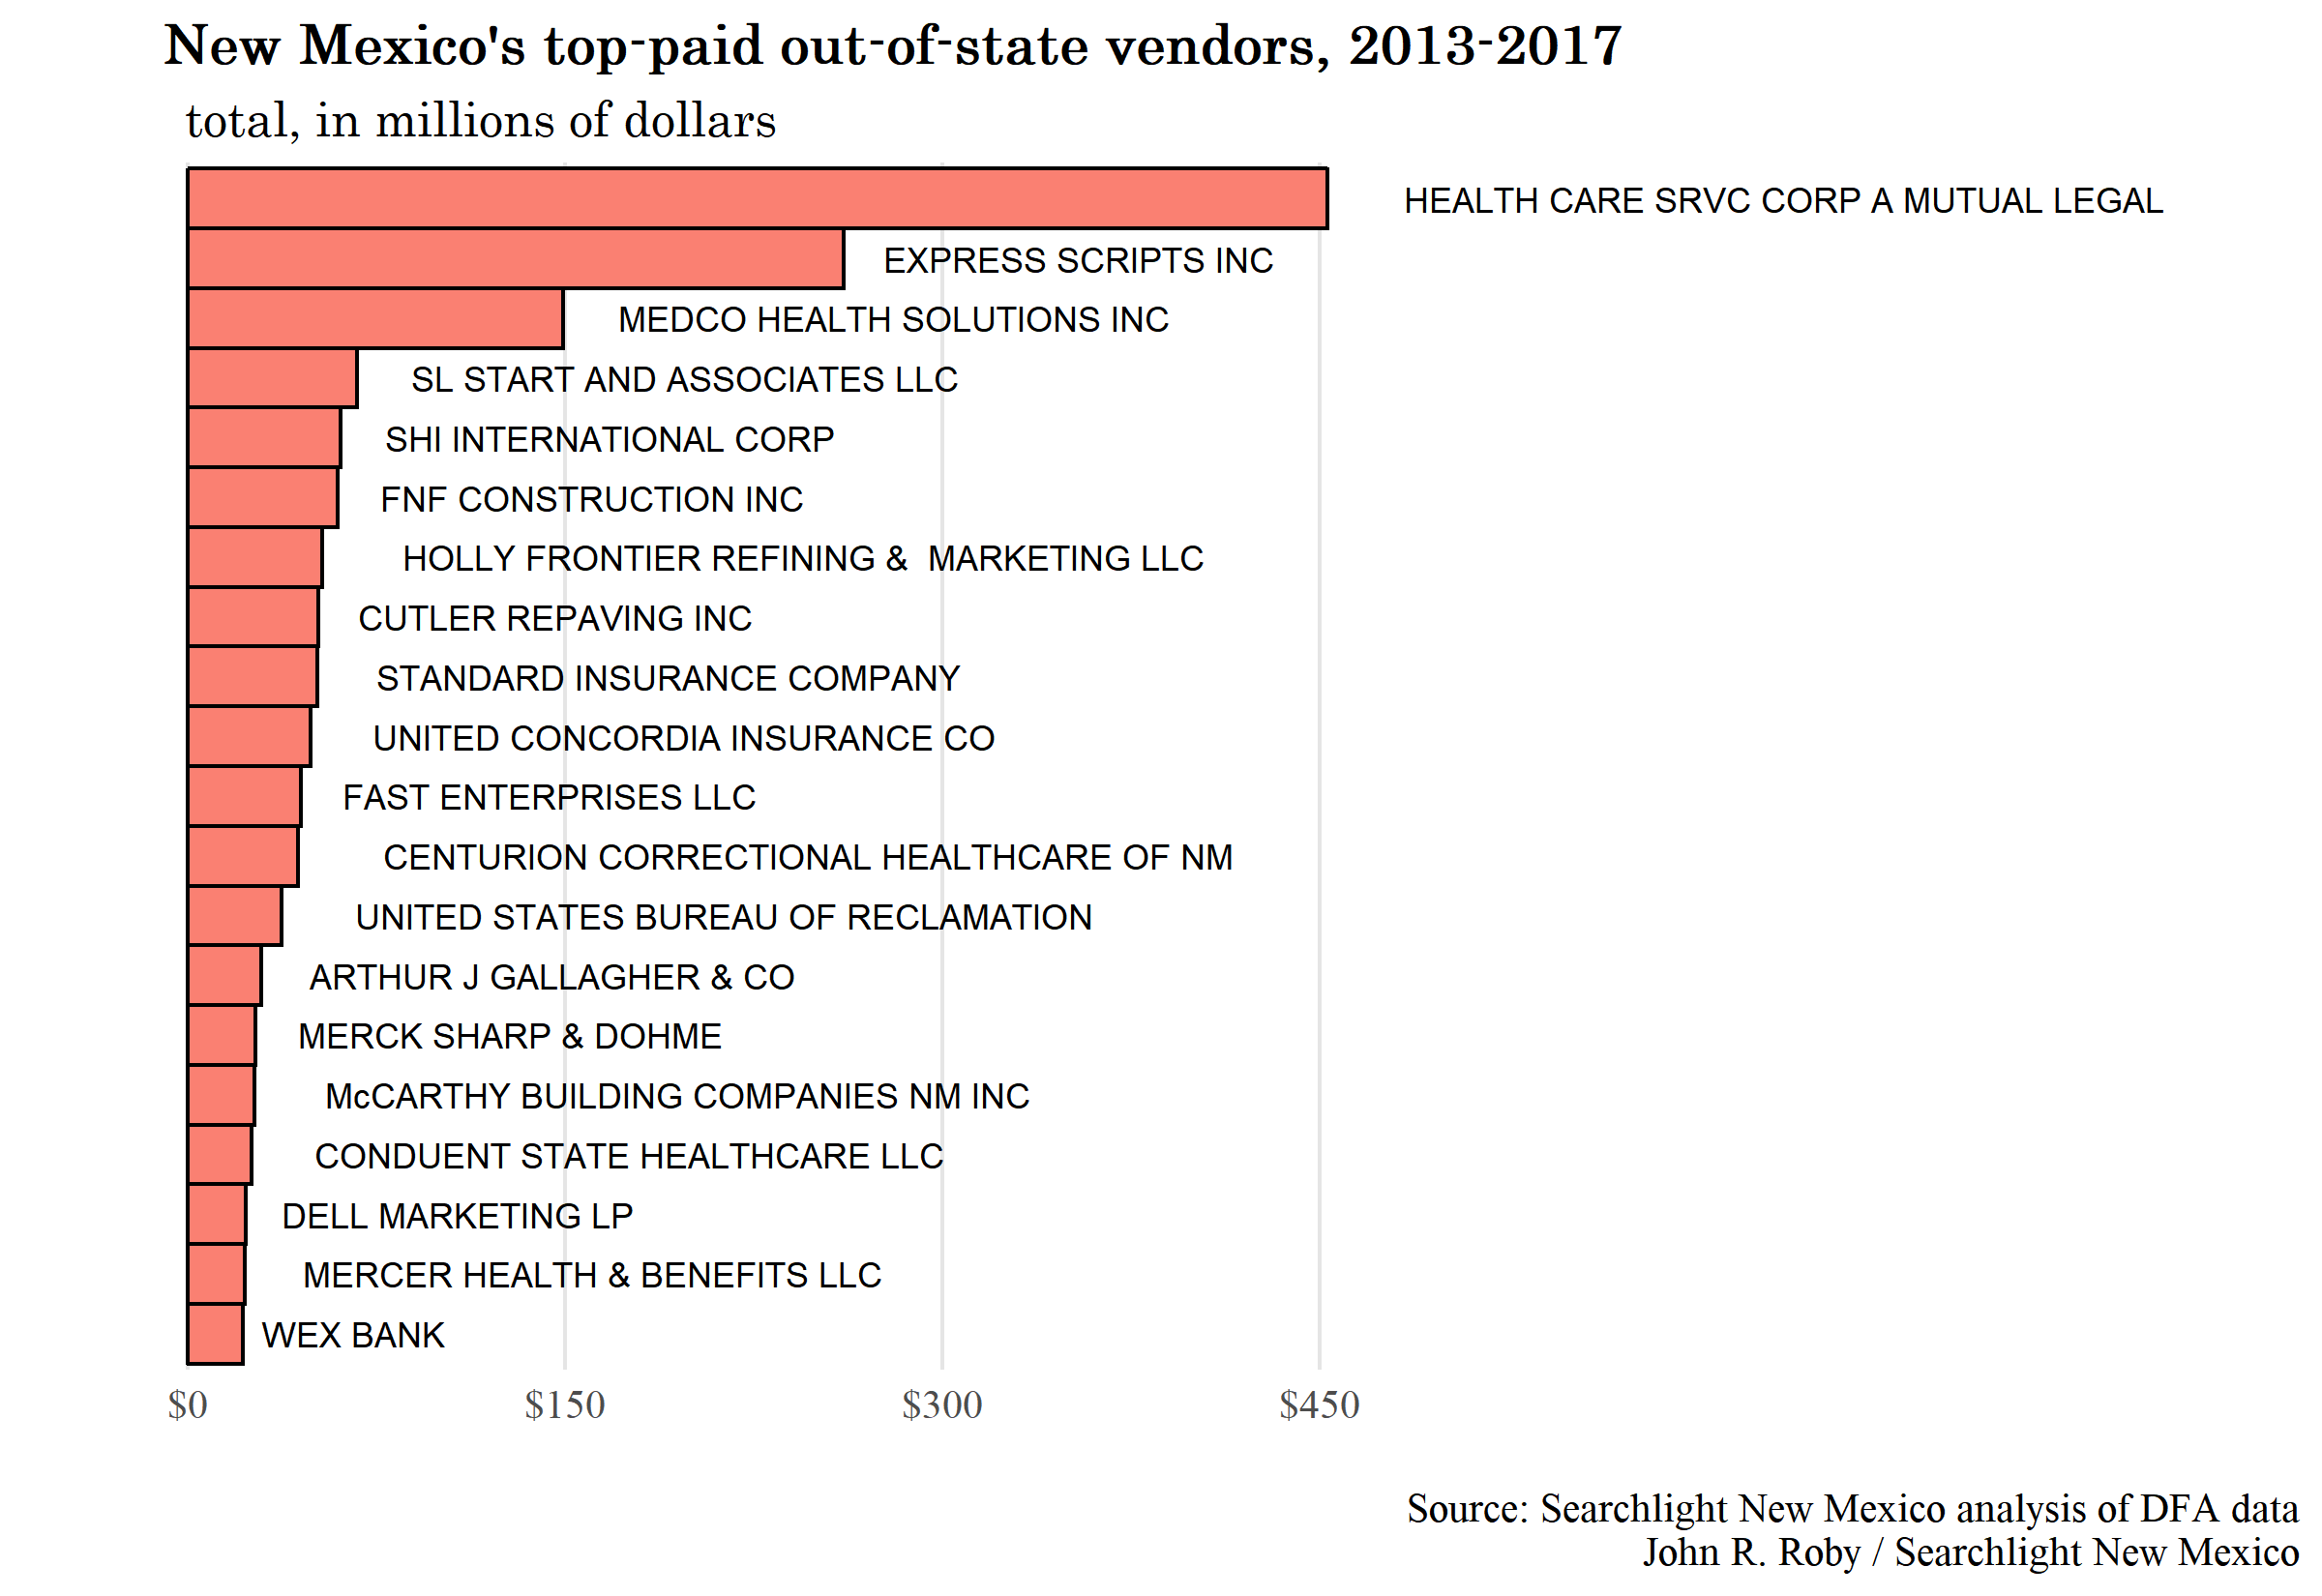 top-oos-vendors